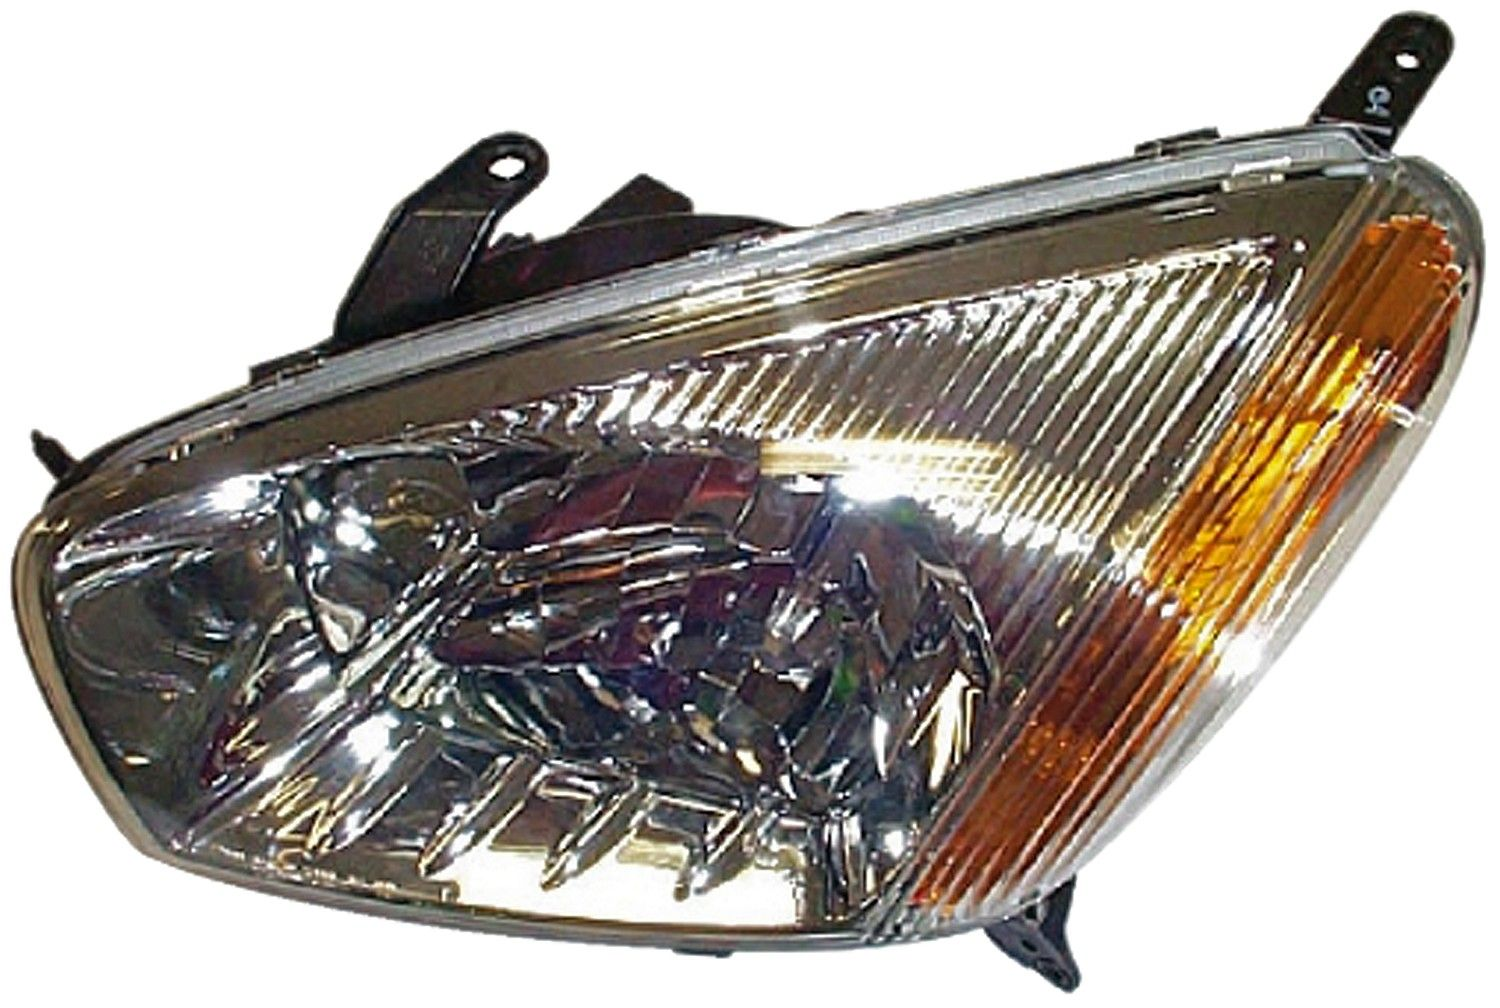 Toyota Rav4 Headlight Assembly Replacement Dorman Tyc Products 2001 Lights Left 1591868 Excludes Sport